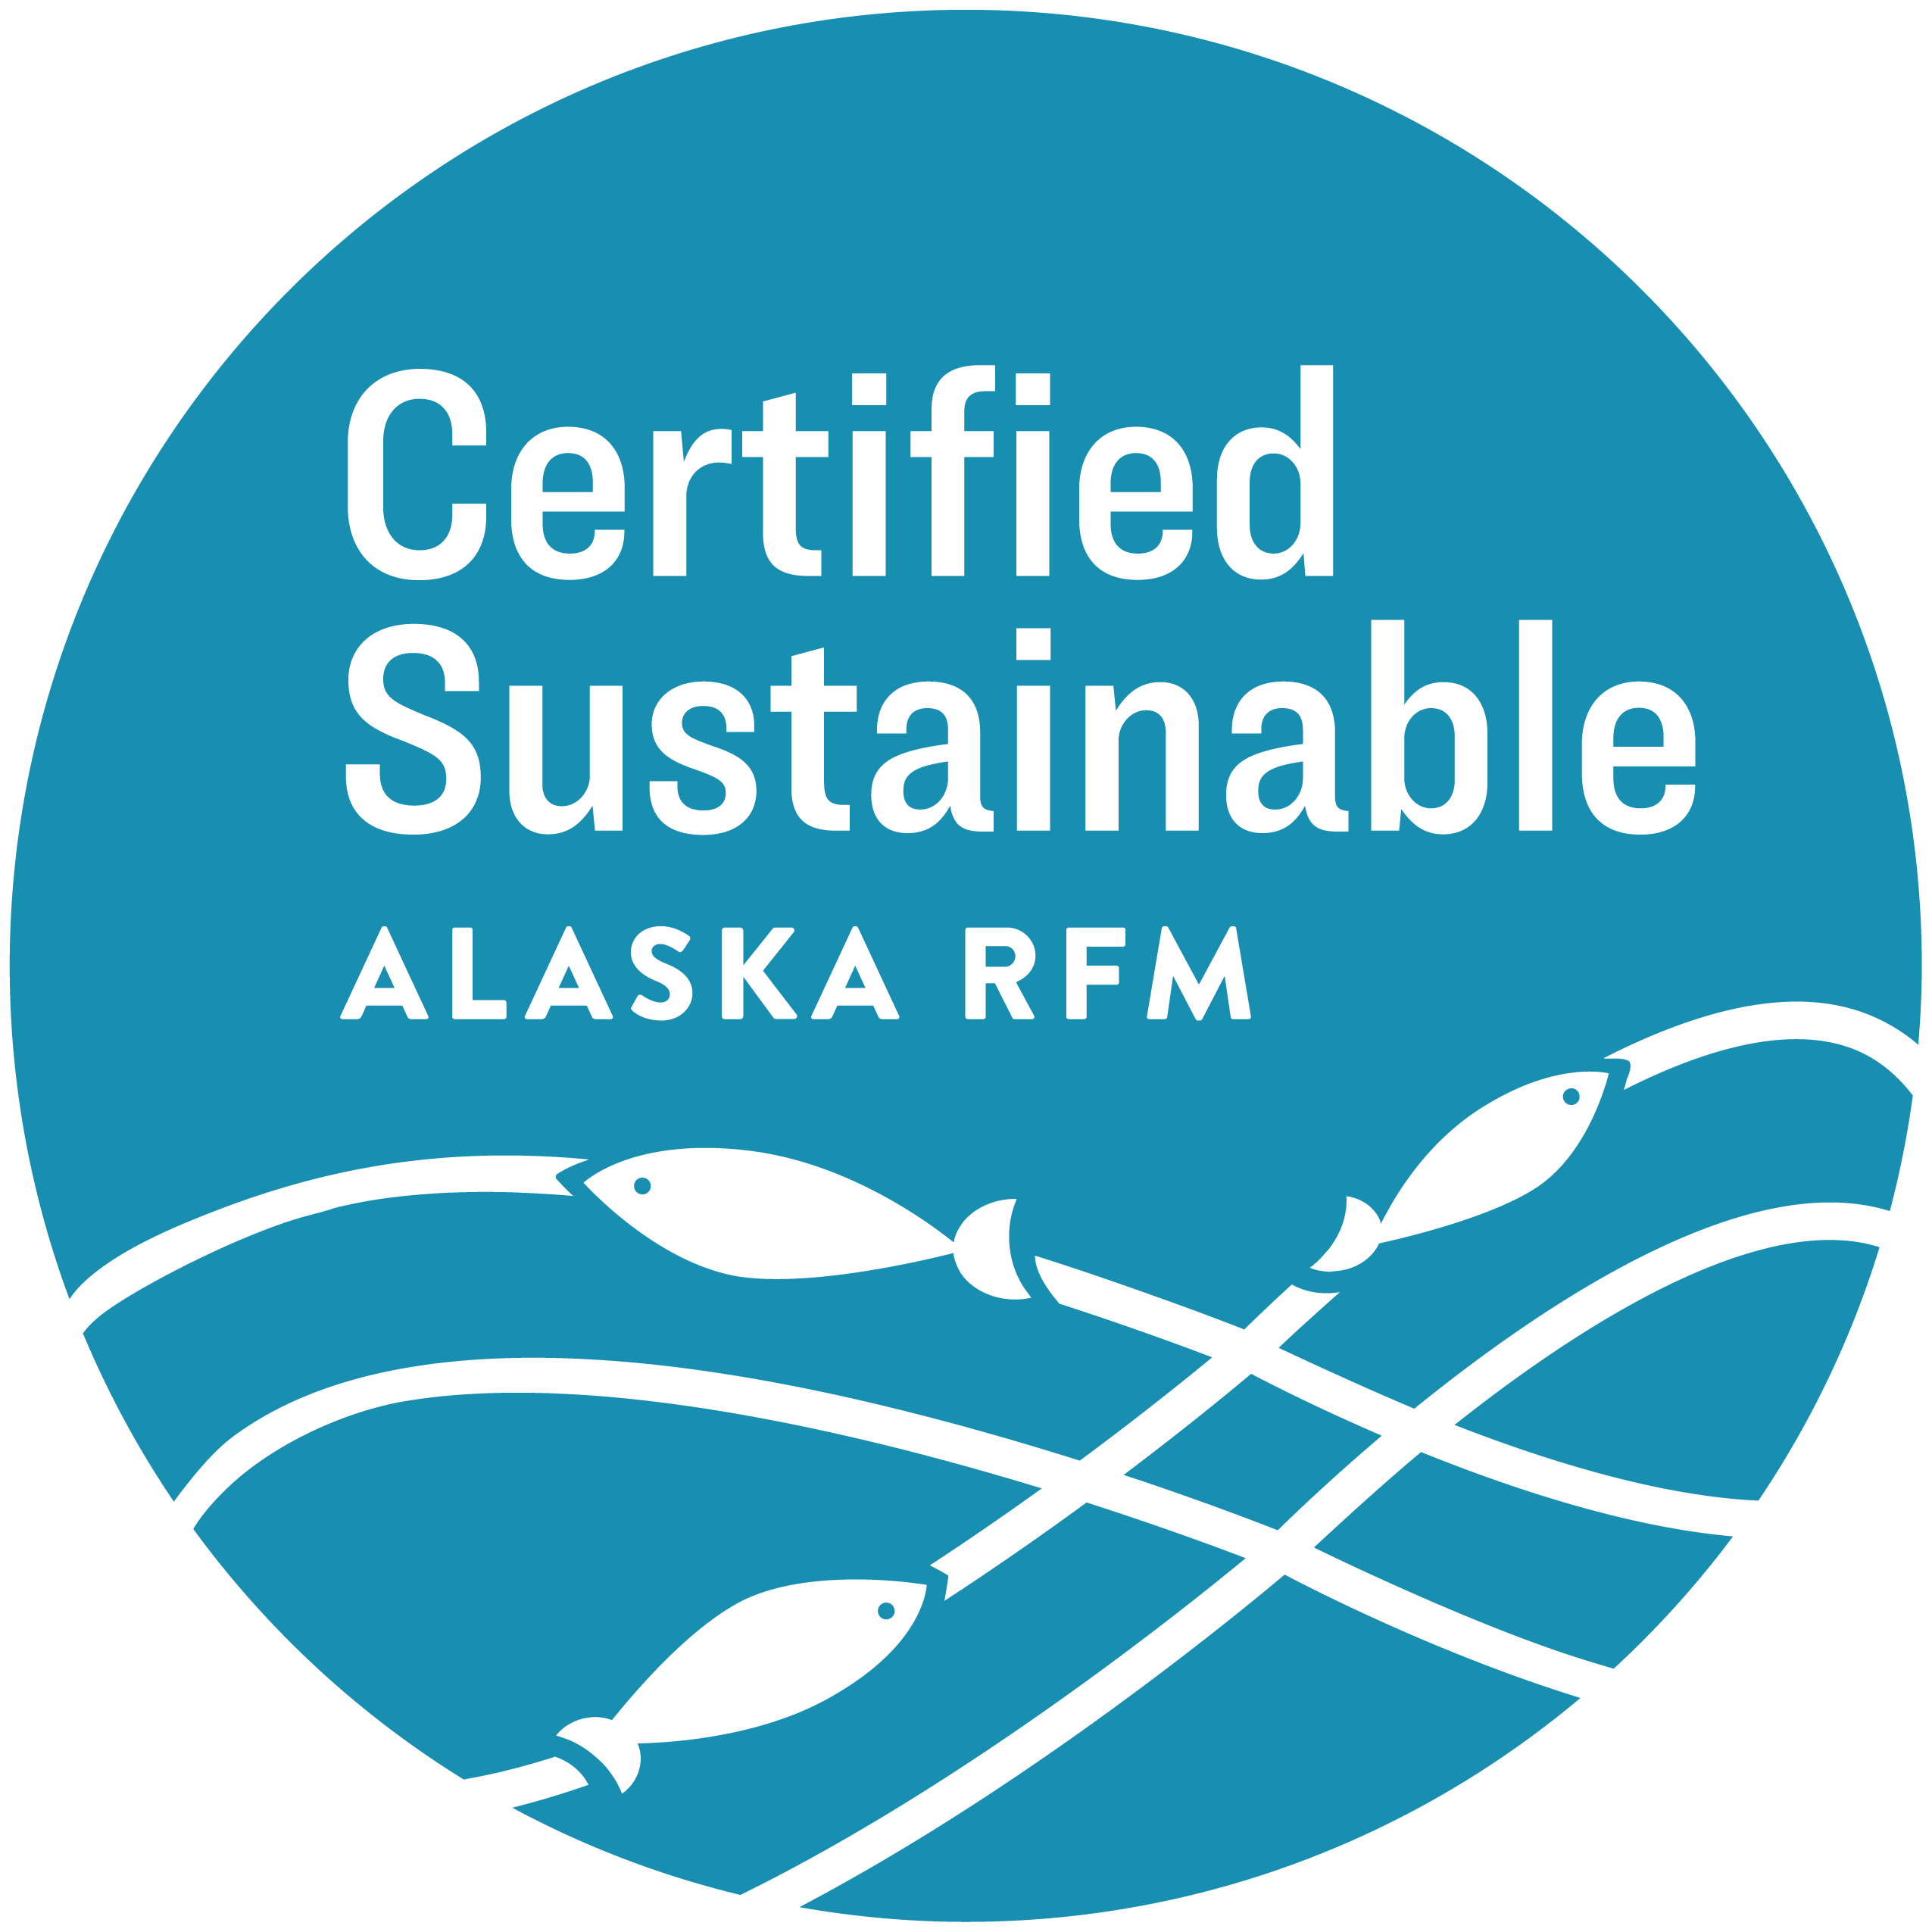 FOR RELEASE: Certified Seafood Collaborative Takes Ownership of RFM Certification Program